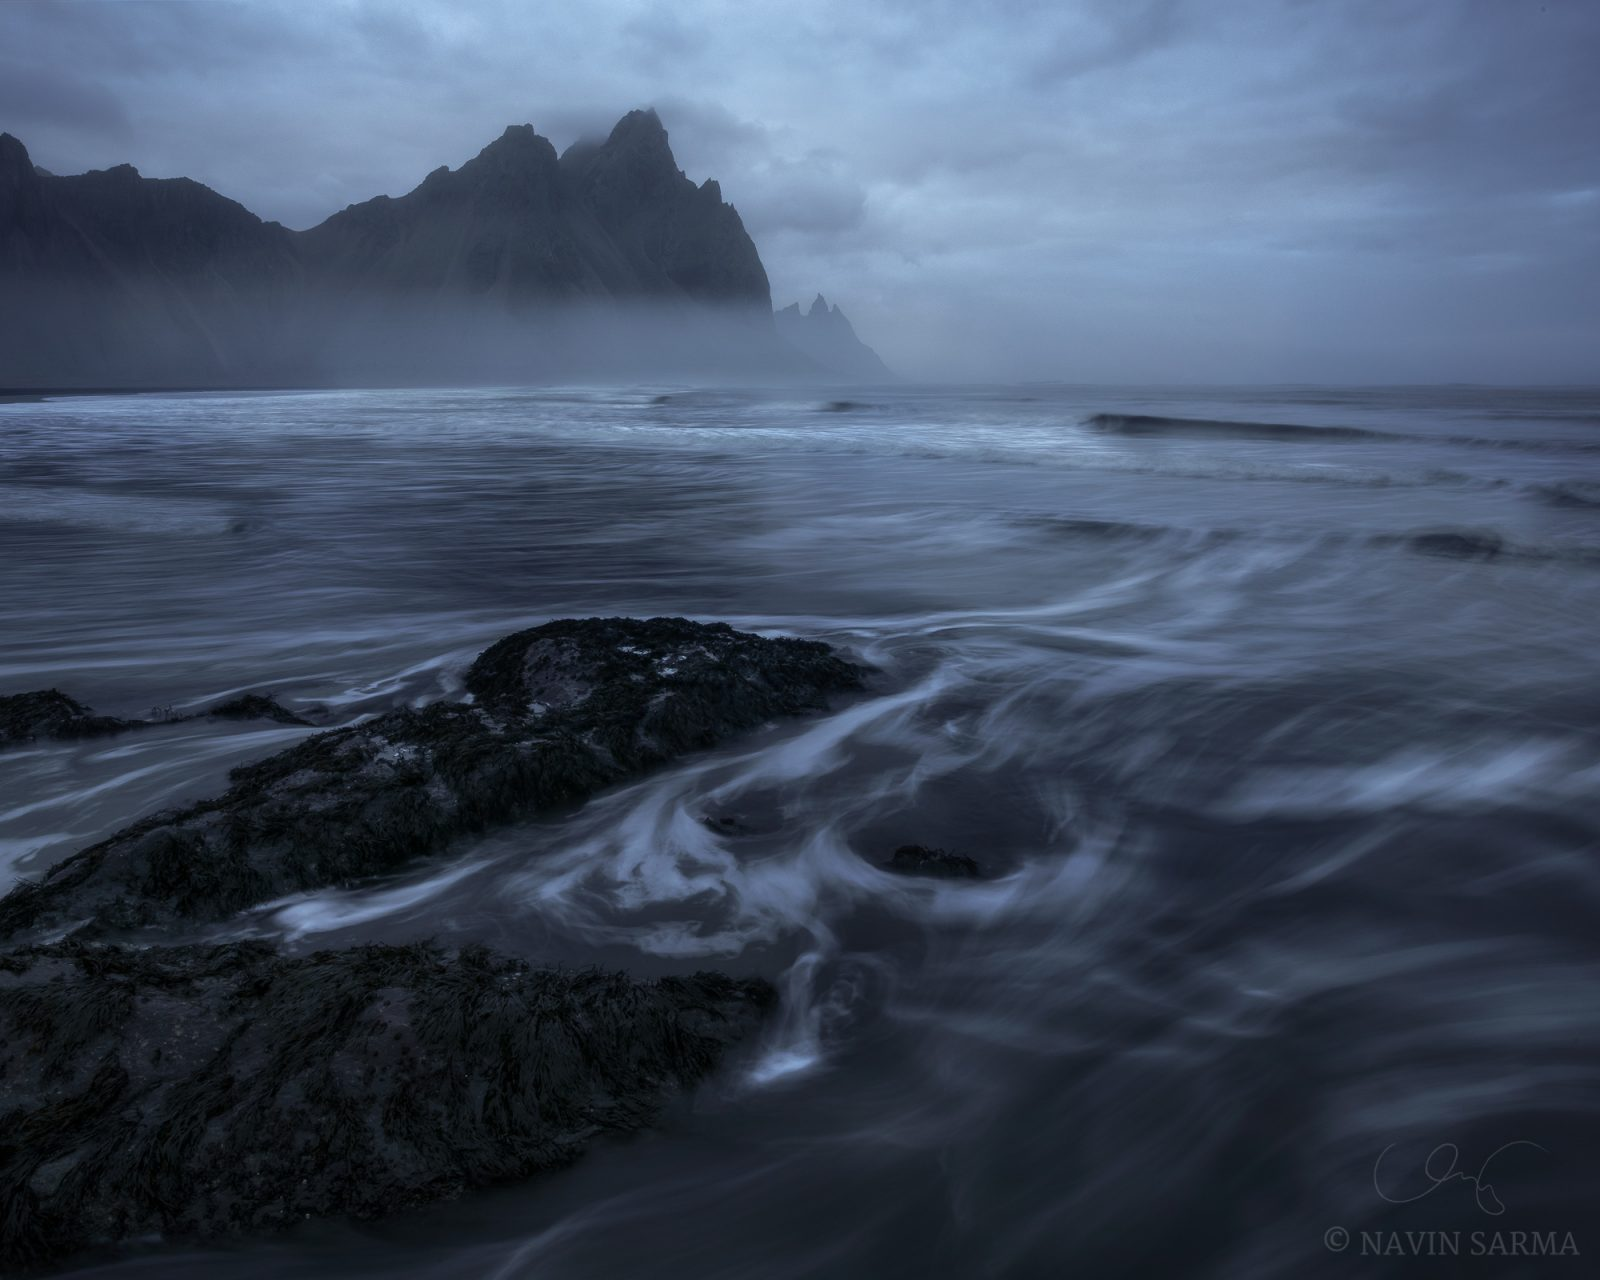 As the tide rises up the beach the sun sets creating a moody scene at Vesturhorn mountain